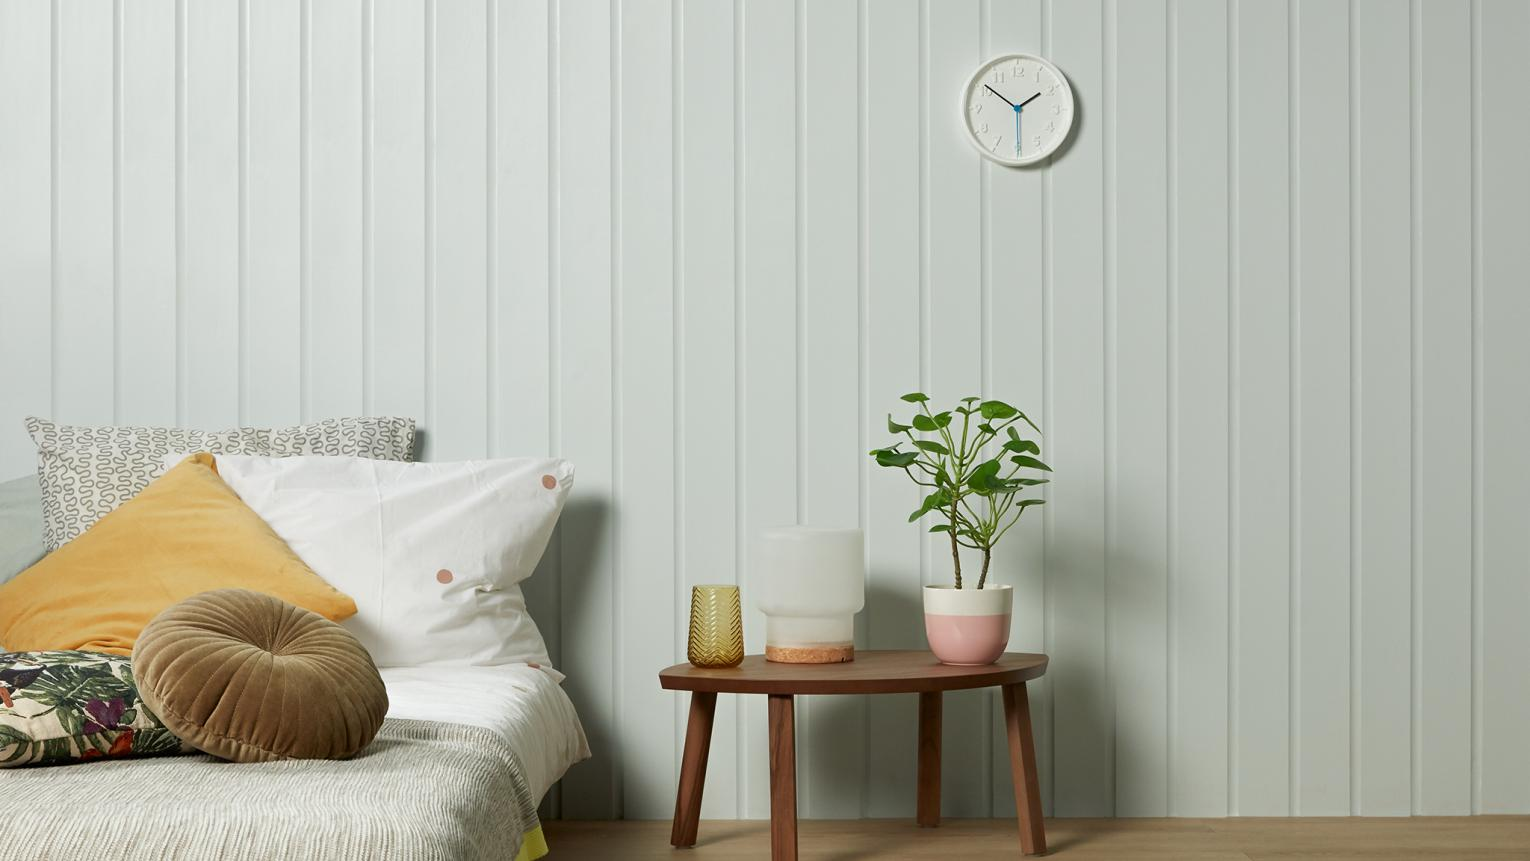 dulux-simply-refresh-wall-panels_global_1